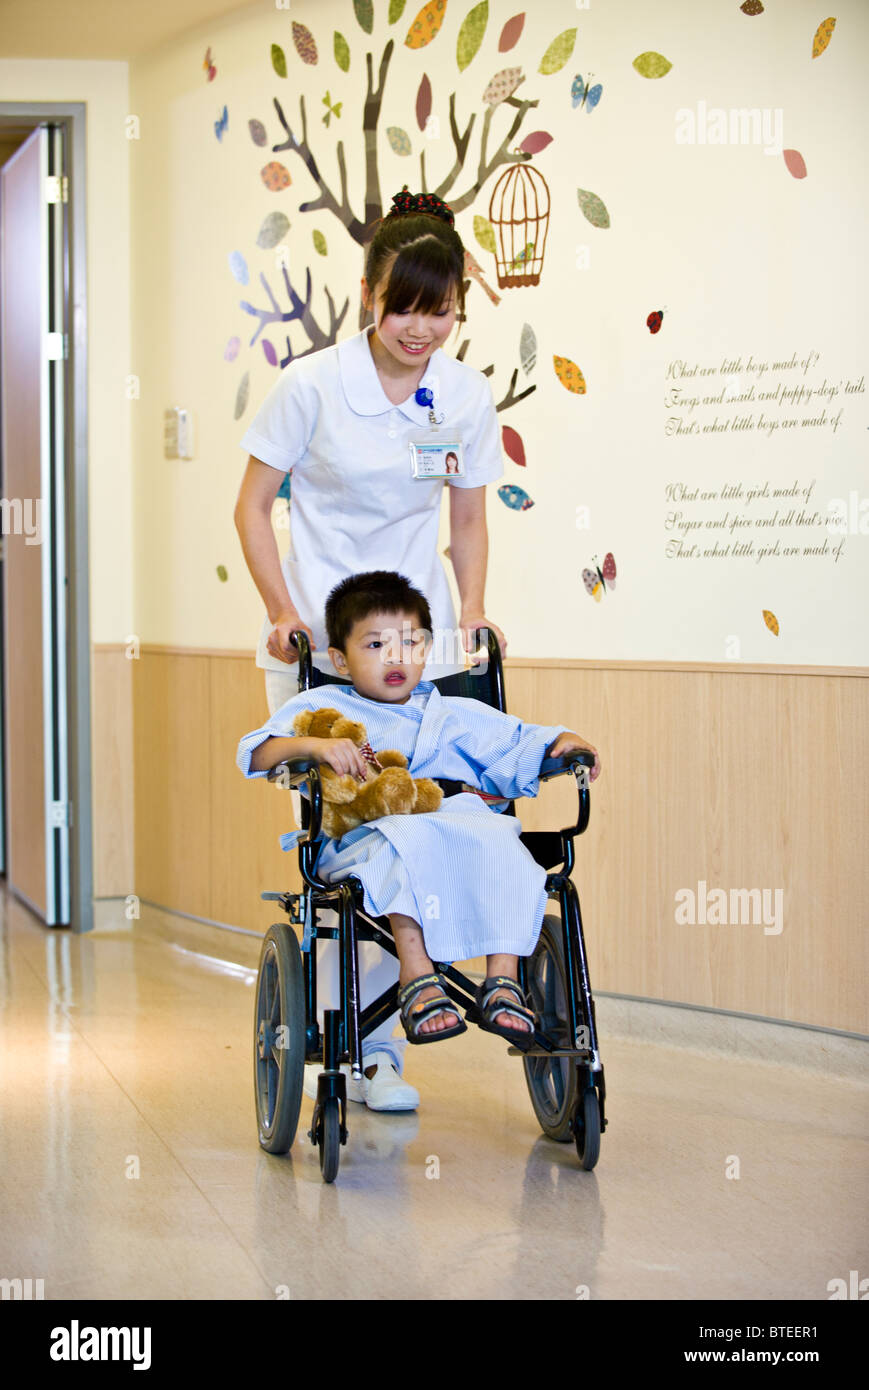 Person Pushing Wheelchair - Nurse pushing young child patient in wheelchair down corridor in hospital pediatrics unit stock image